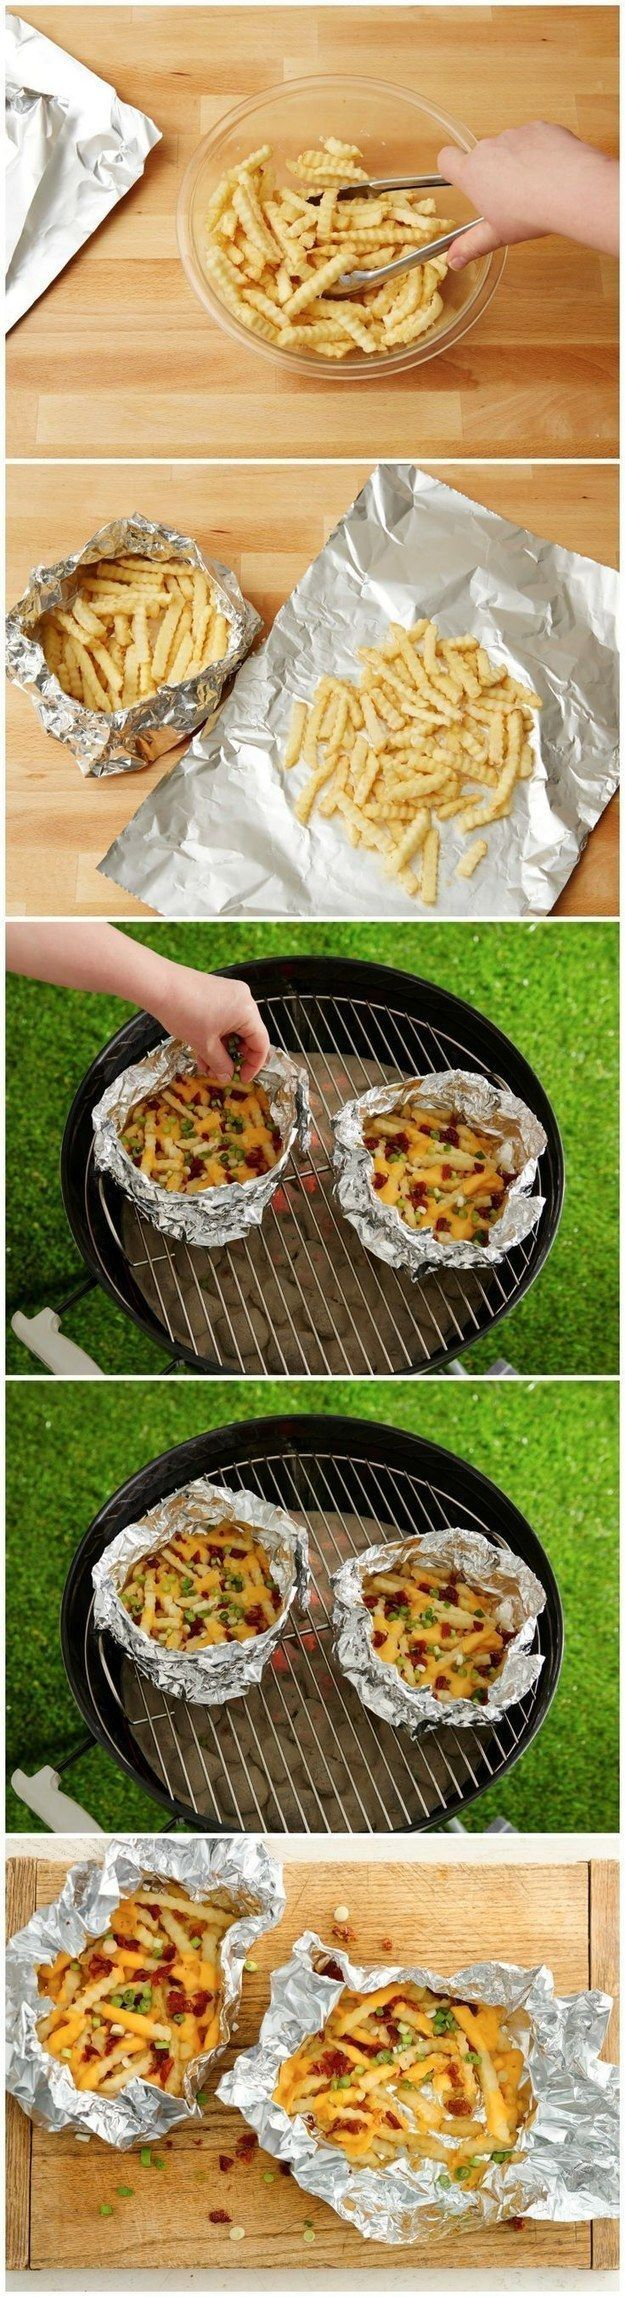 Foil-Pack Cheesy Fries | 23 Camping Recipes Your Summer 100% Needs